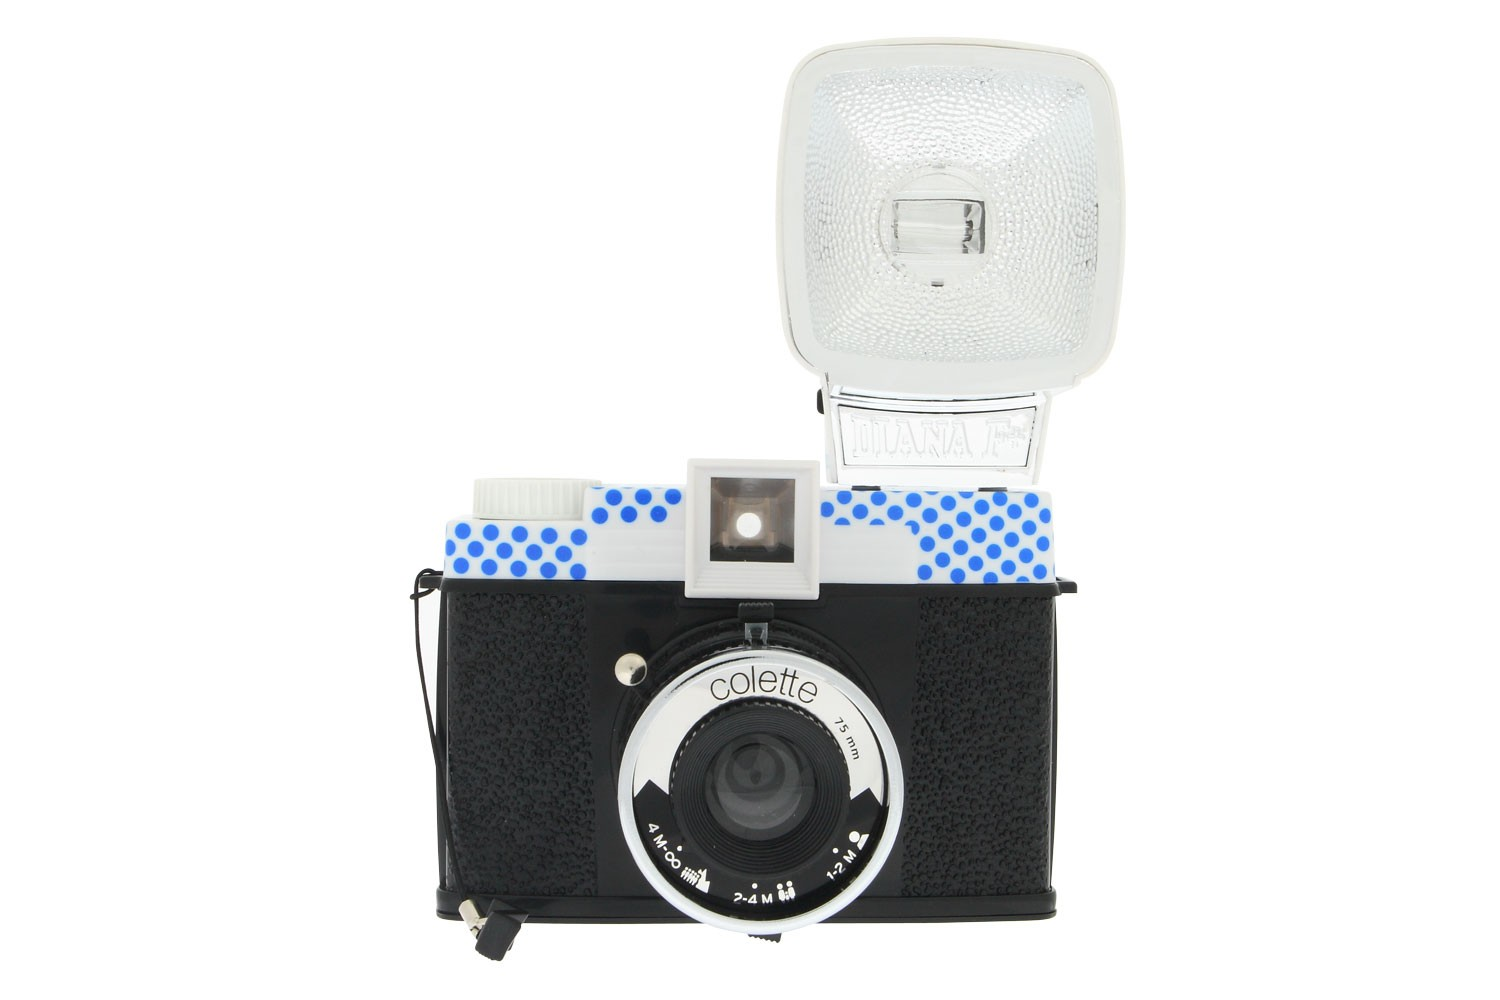 Diana F+ Camera and Flash (Colette Edition)